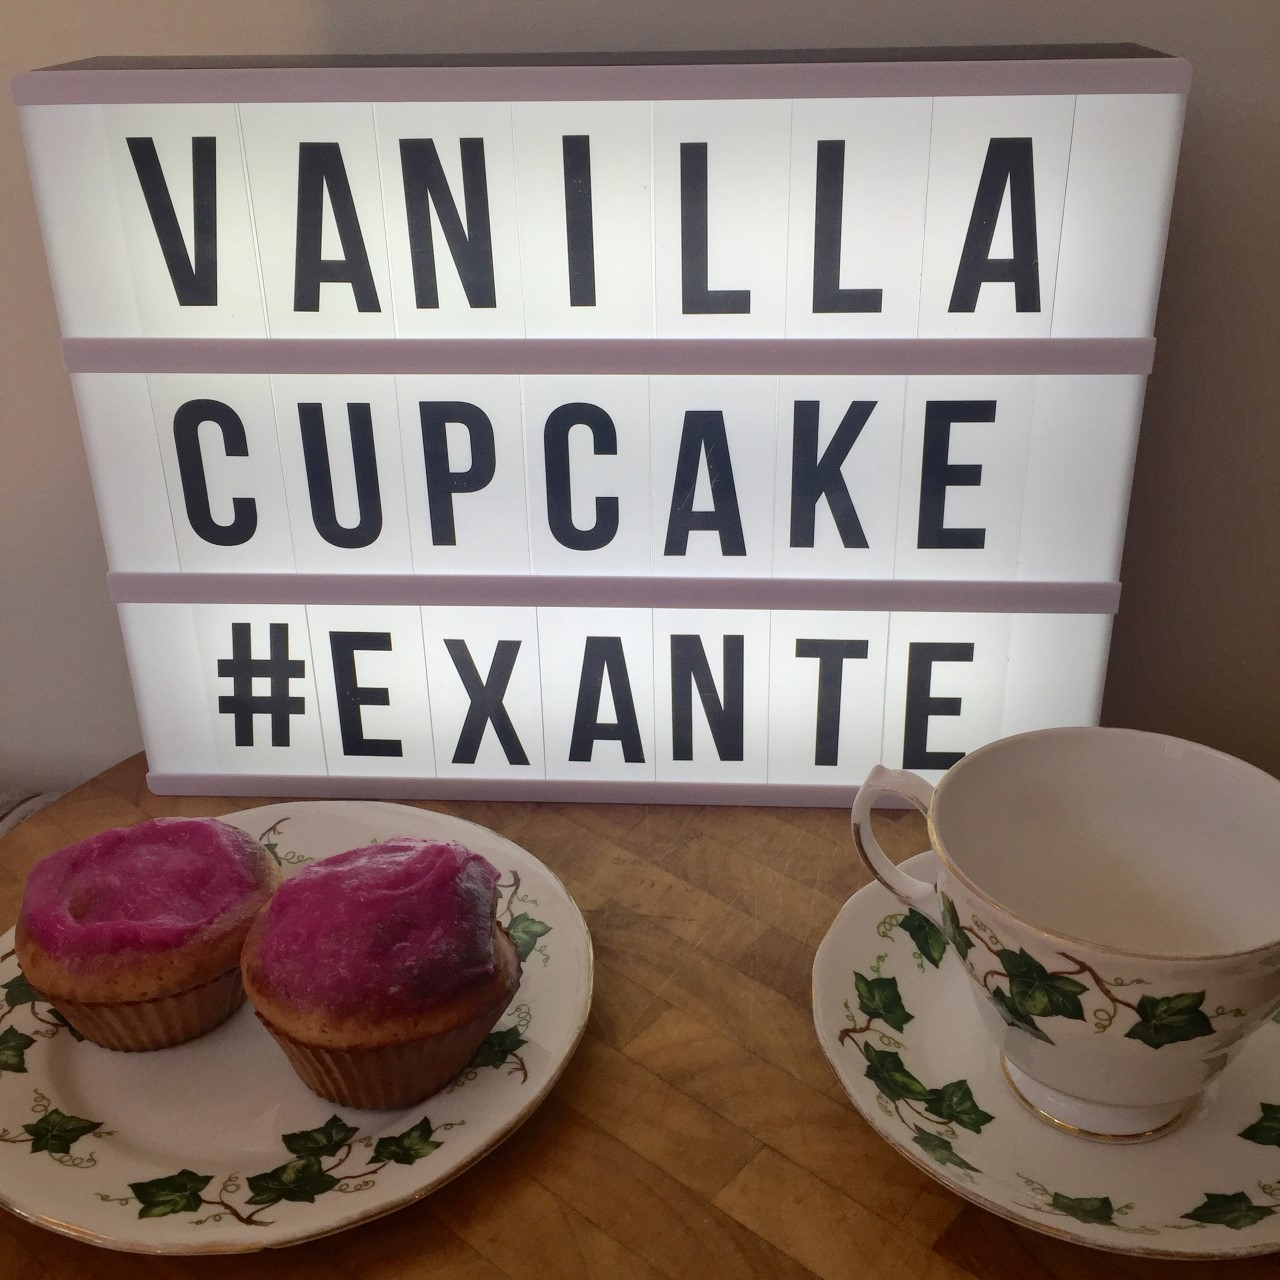 Exante – Life with the saunders